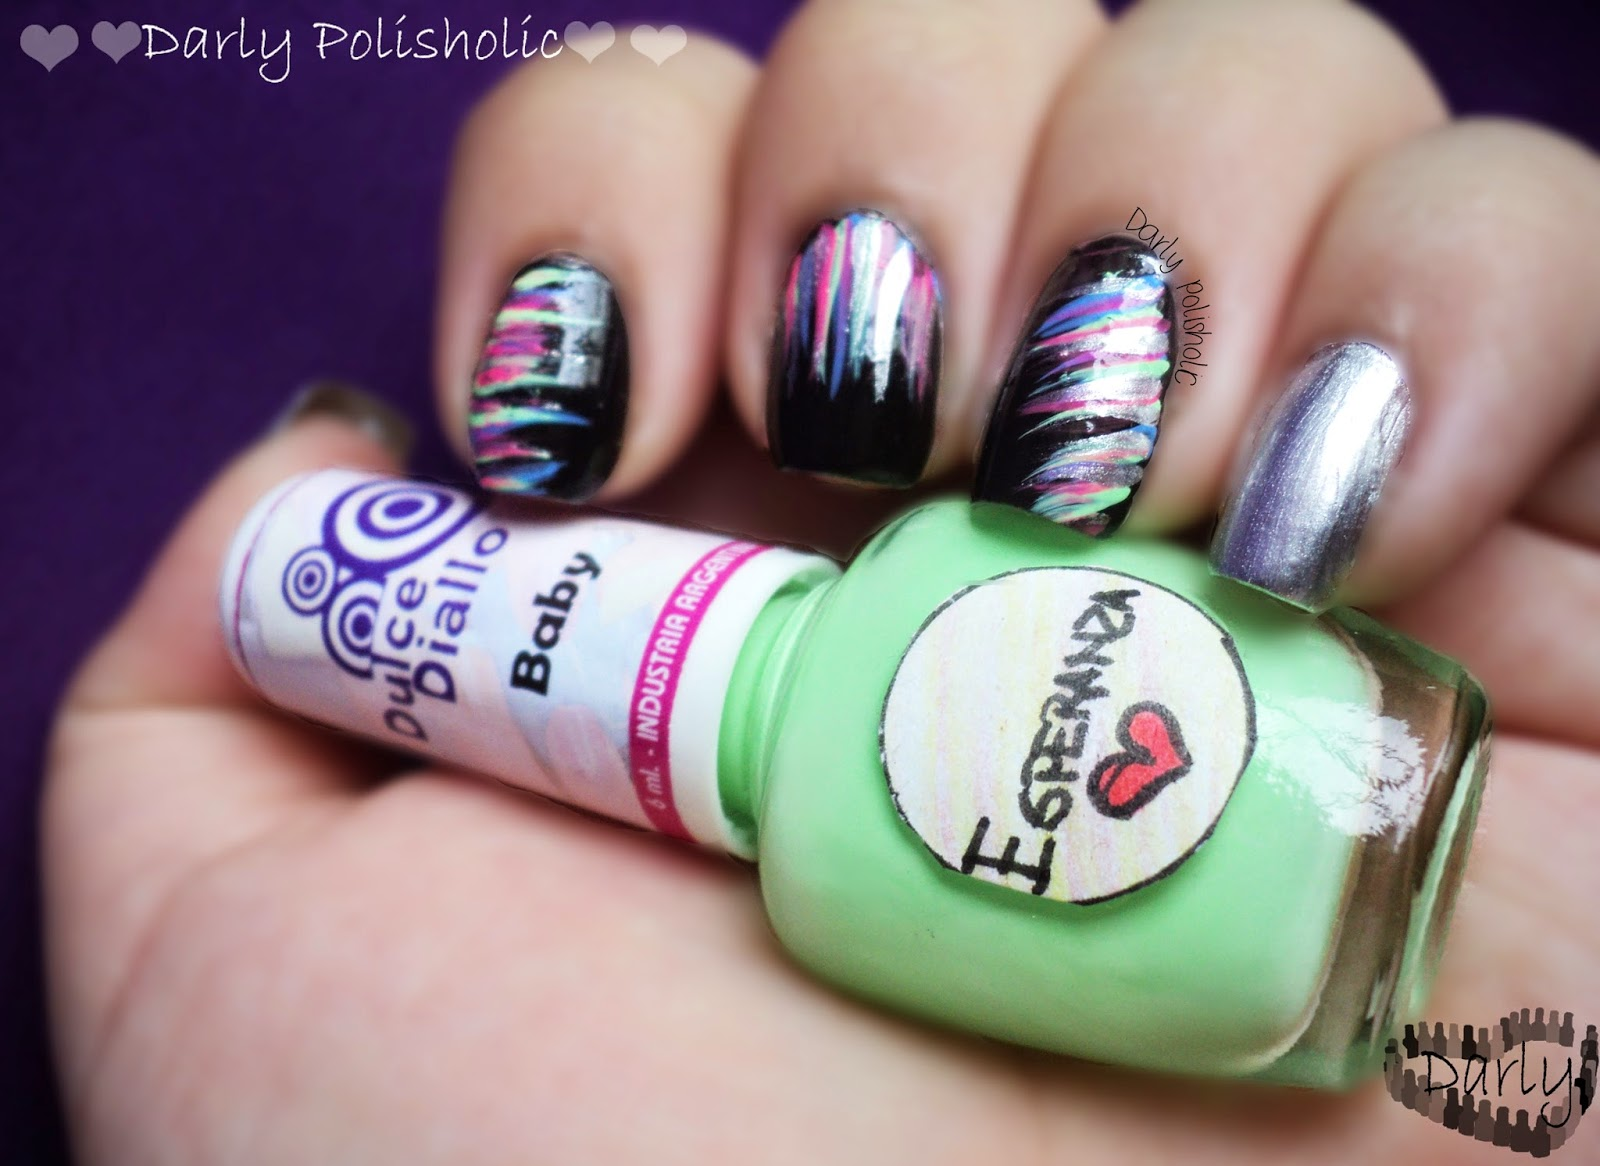 ♥♥♥ Darly Polisholic ♥♥♥: ♥♥ Waterfall nails... post ...